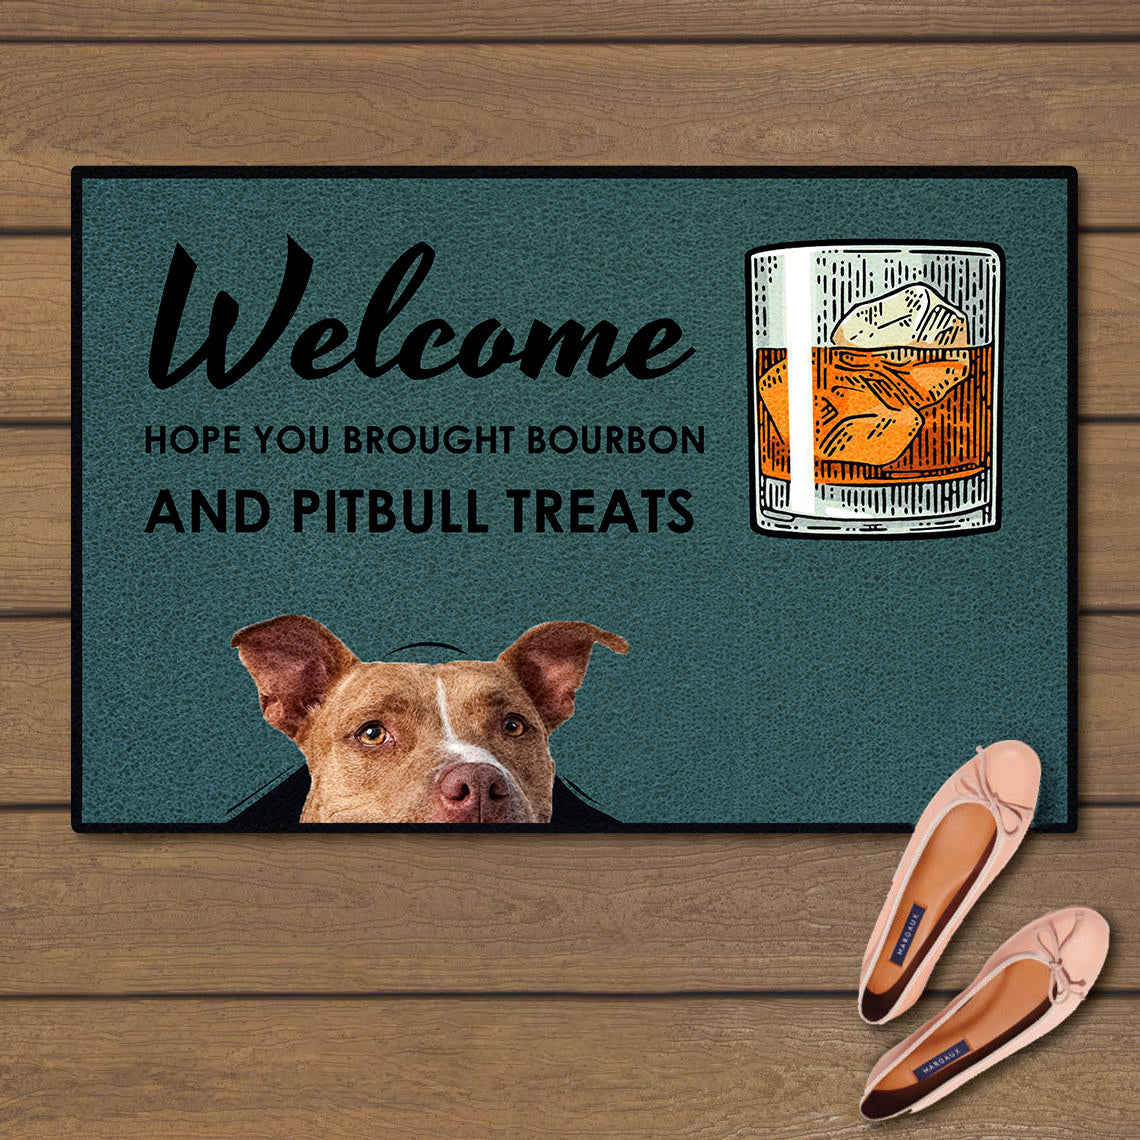 Welcome hope you brought bourbon and pitbull treats doormat 2